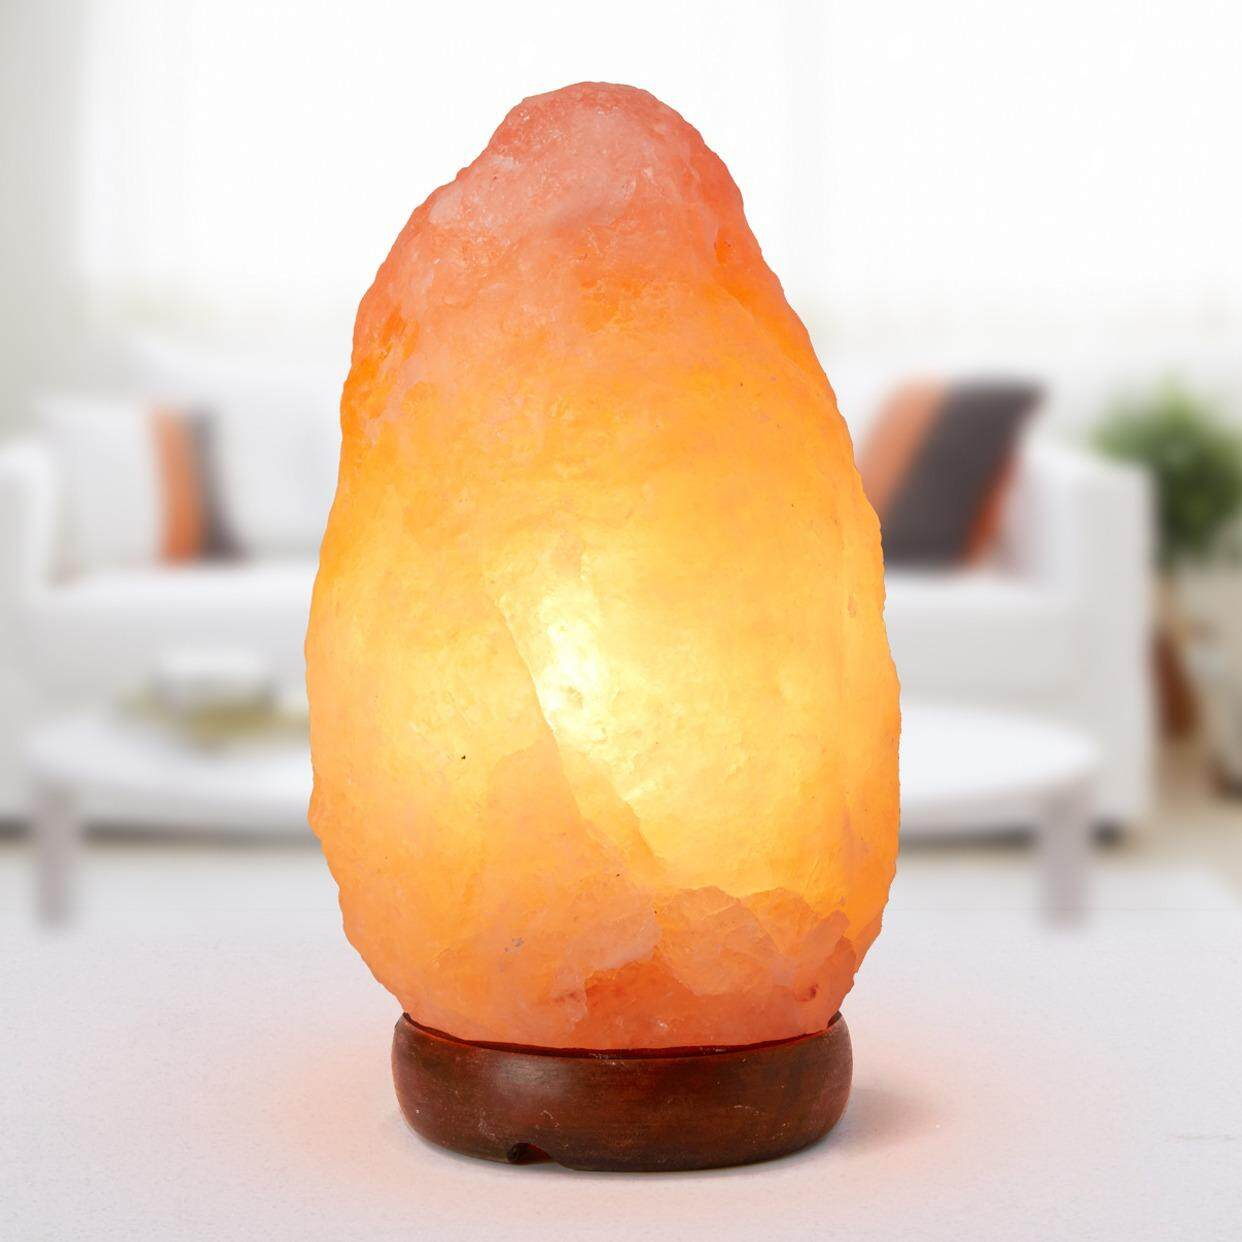 Home lamp shades buy home lamp shades at best price in malaysia 3 5kg himalayan salt crystal lamp natural 1 bulb mozeypictures Gallery